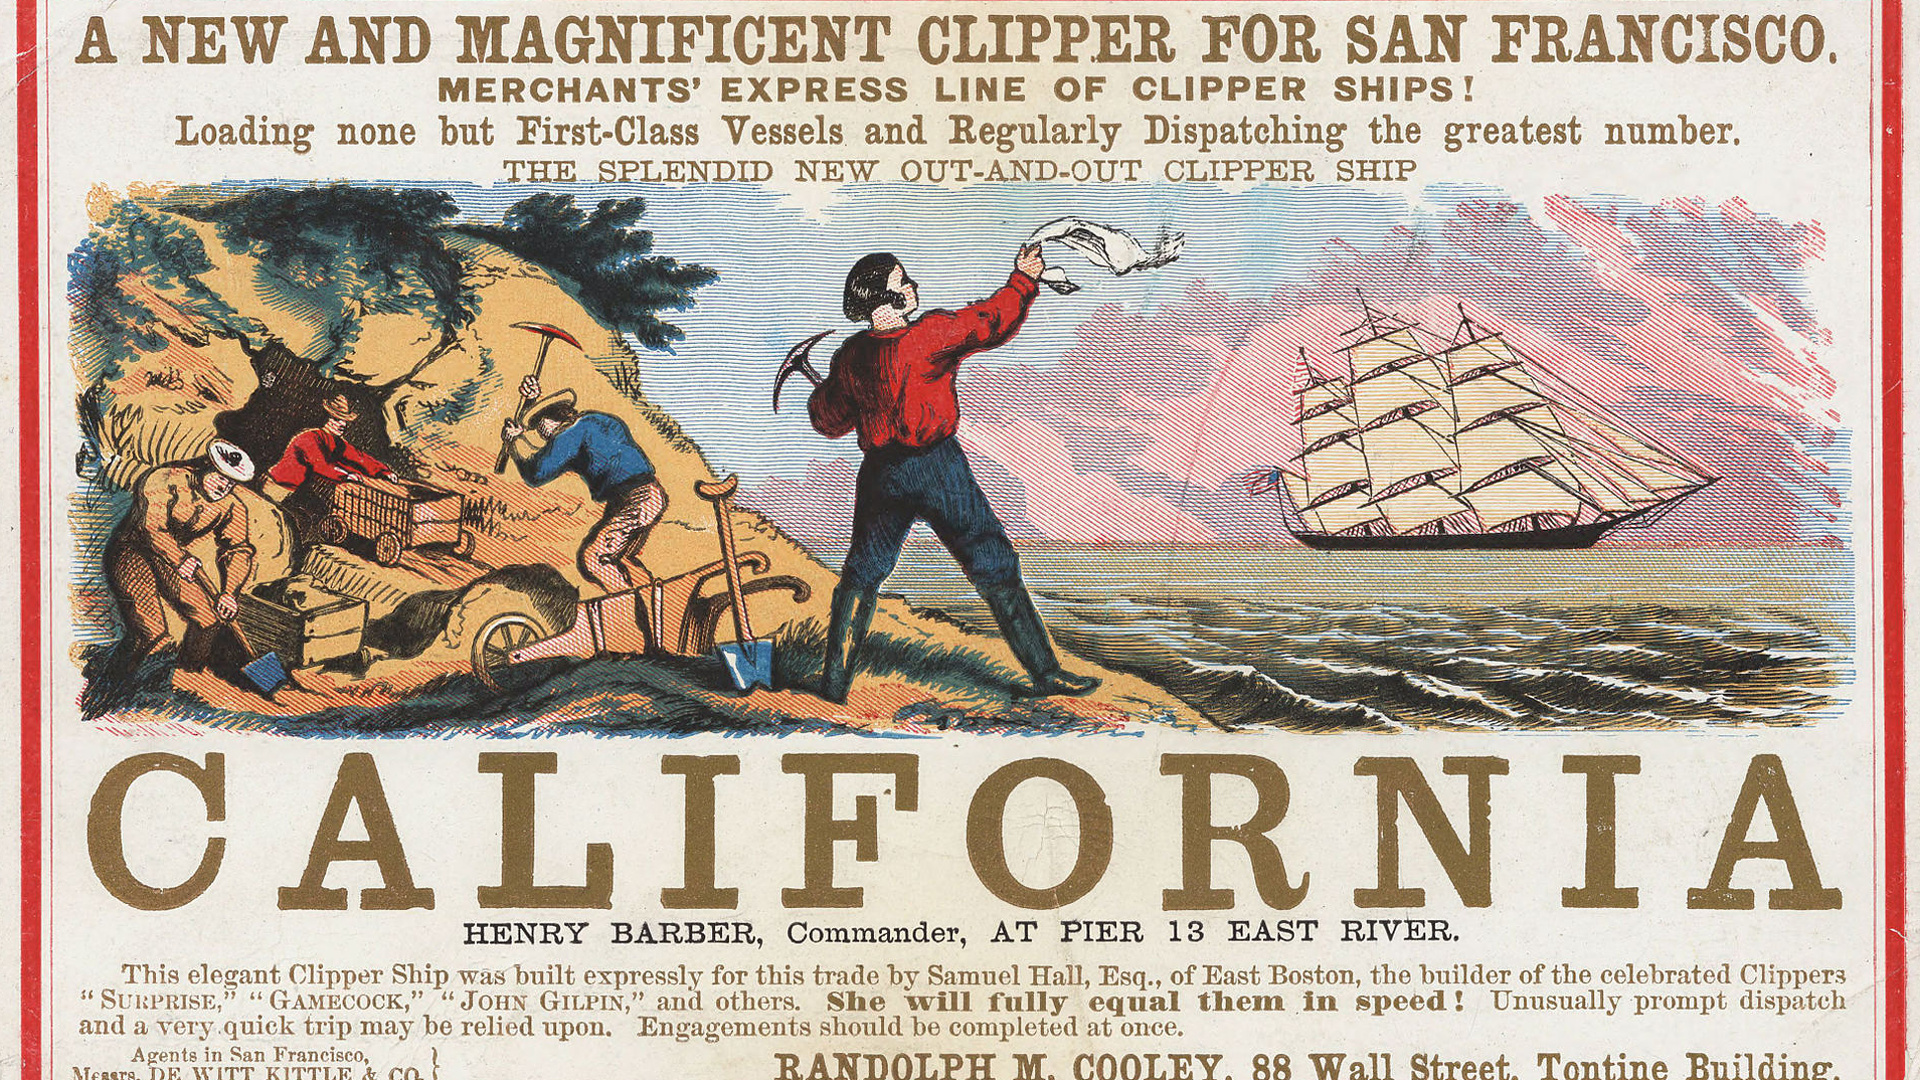 https://c1.primacdn.cz/sites/default/files/daeb7e2f/3890085-california_clipper_500.jpg